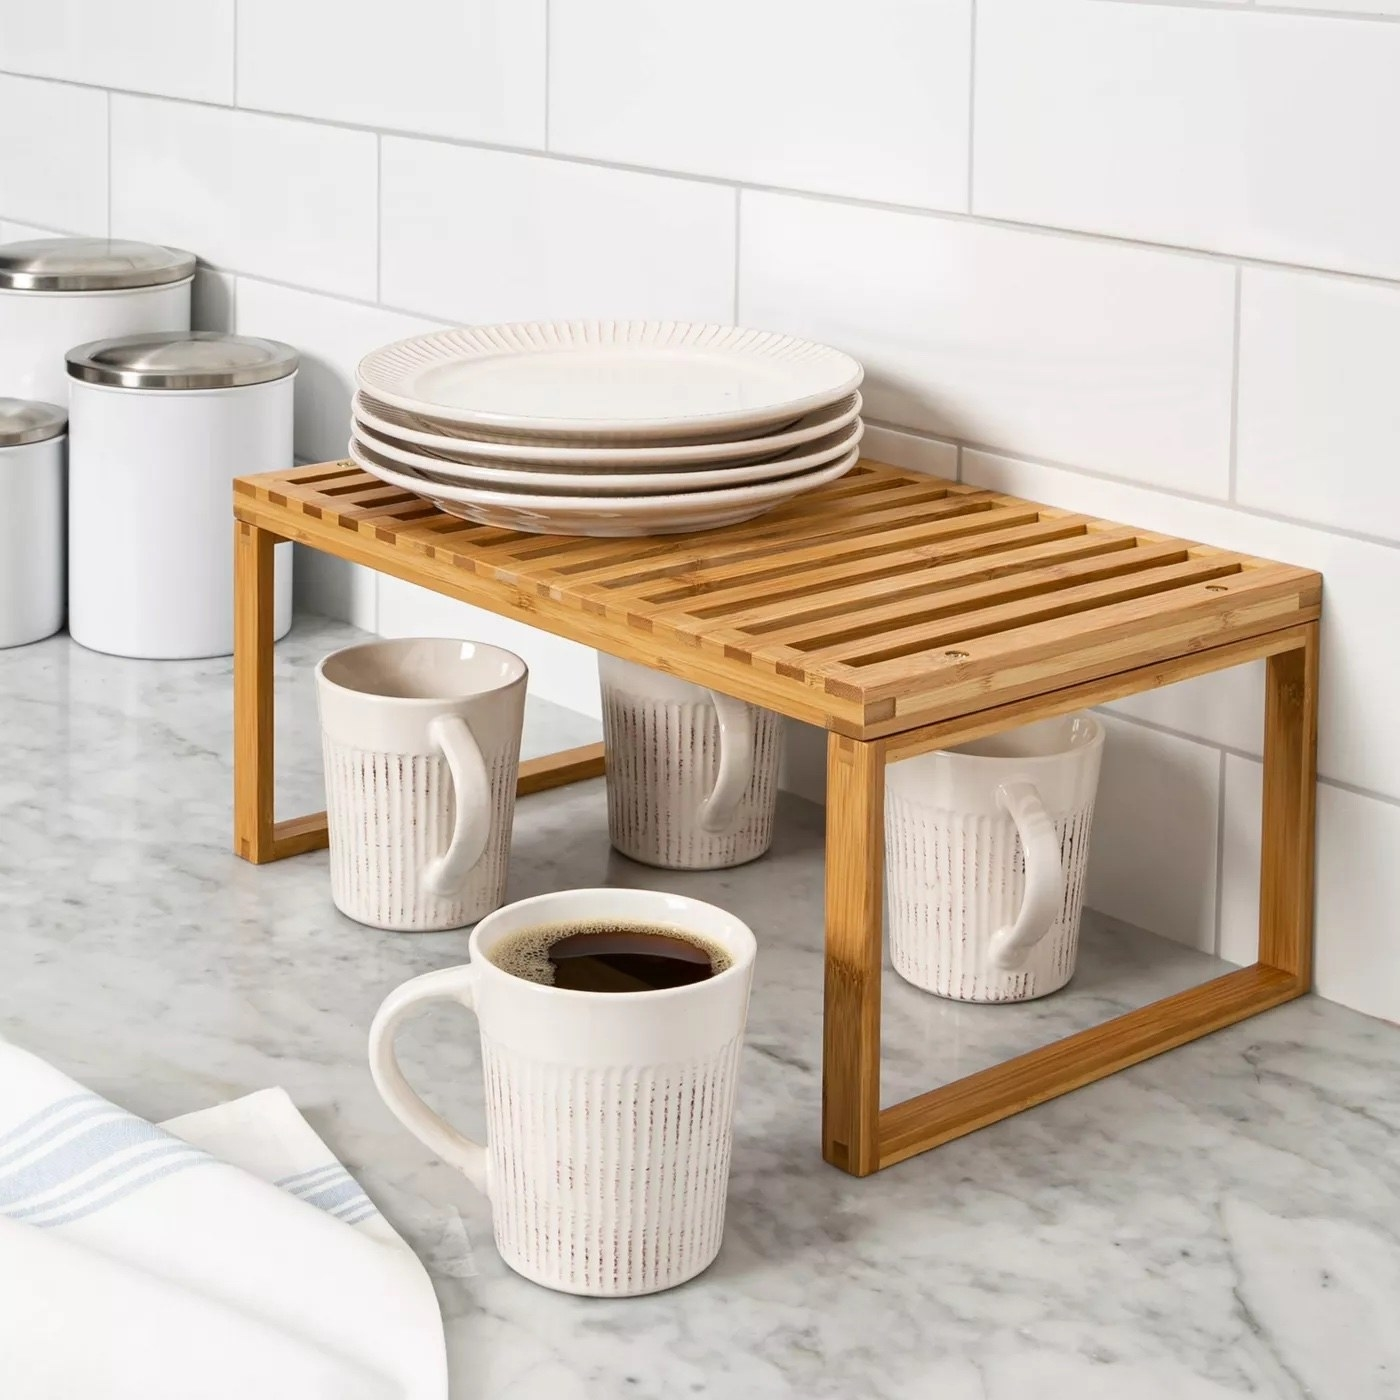 the shelf on a counter with coffee cups and plates